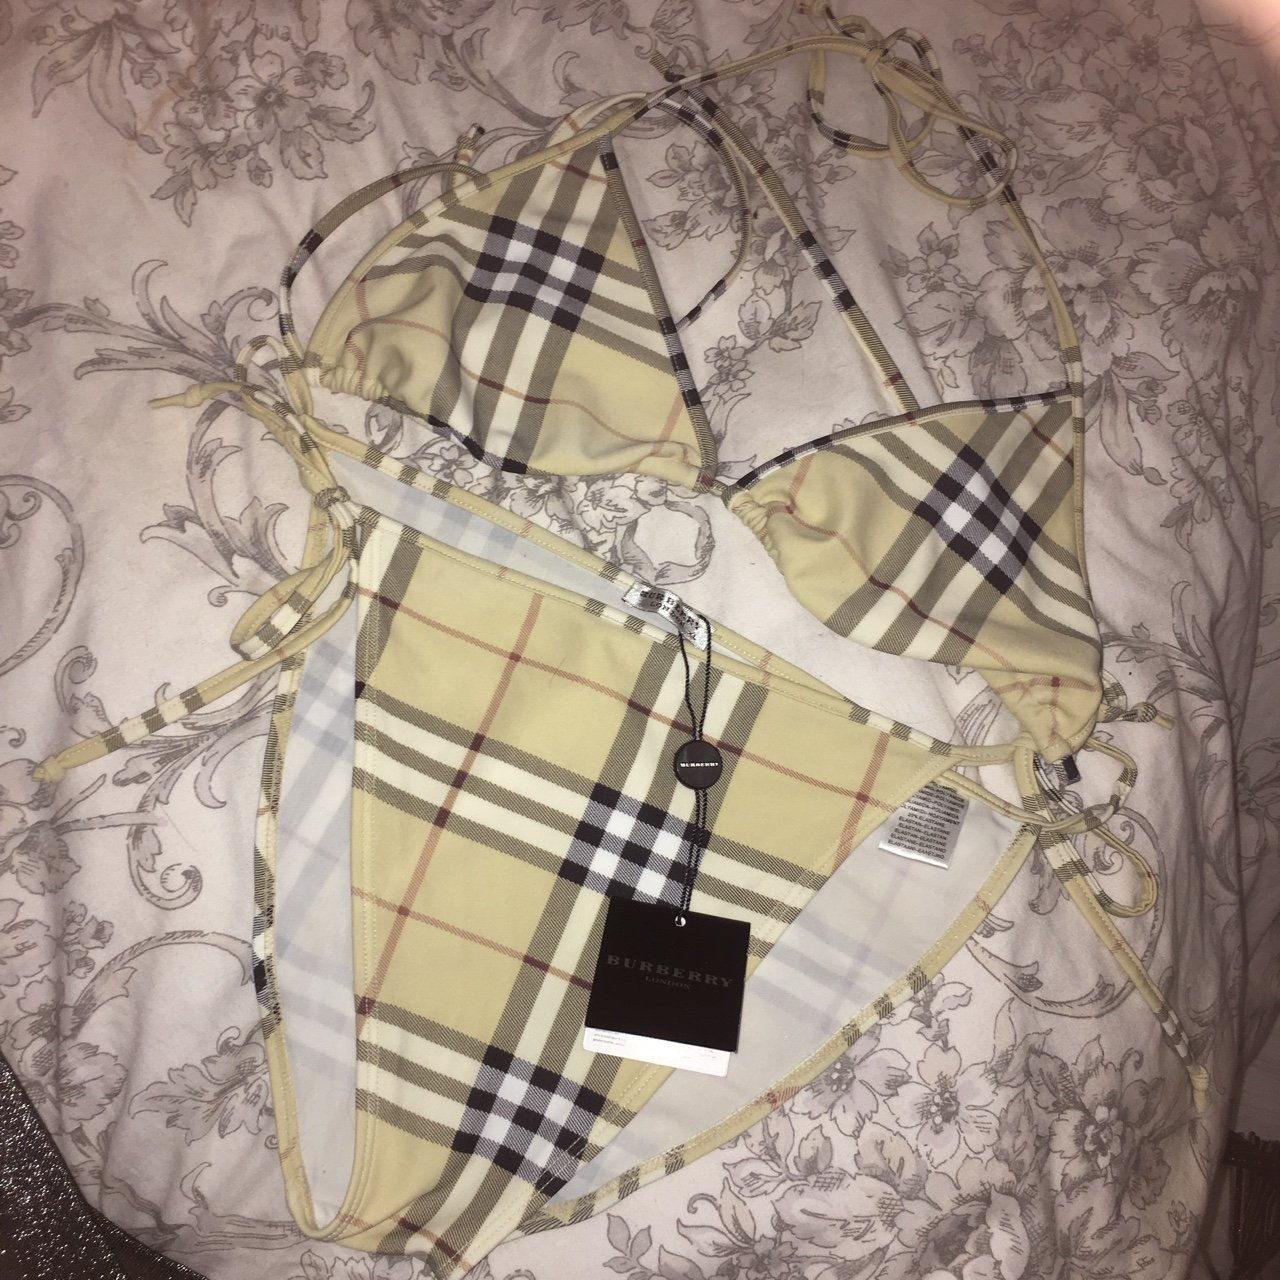 Thinking of selling Authentic Burberry bikini which was from - Depop 11e9c971a3902